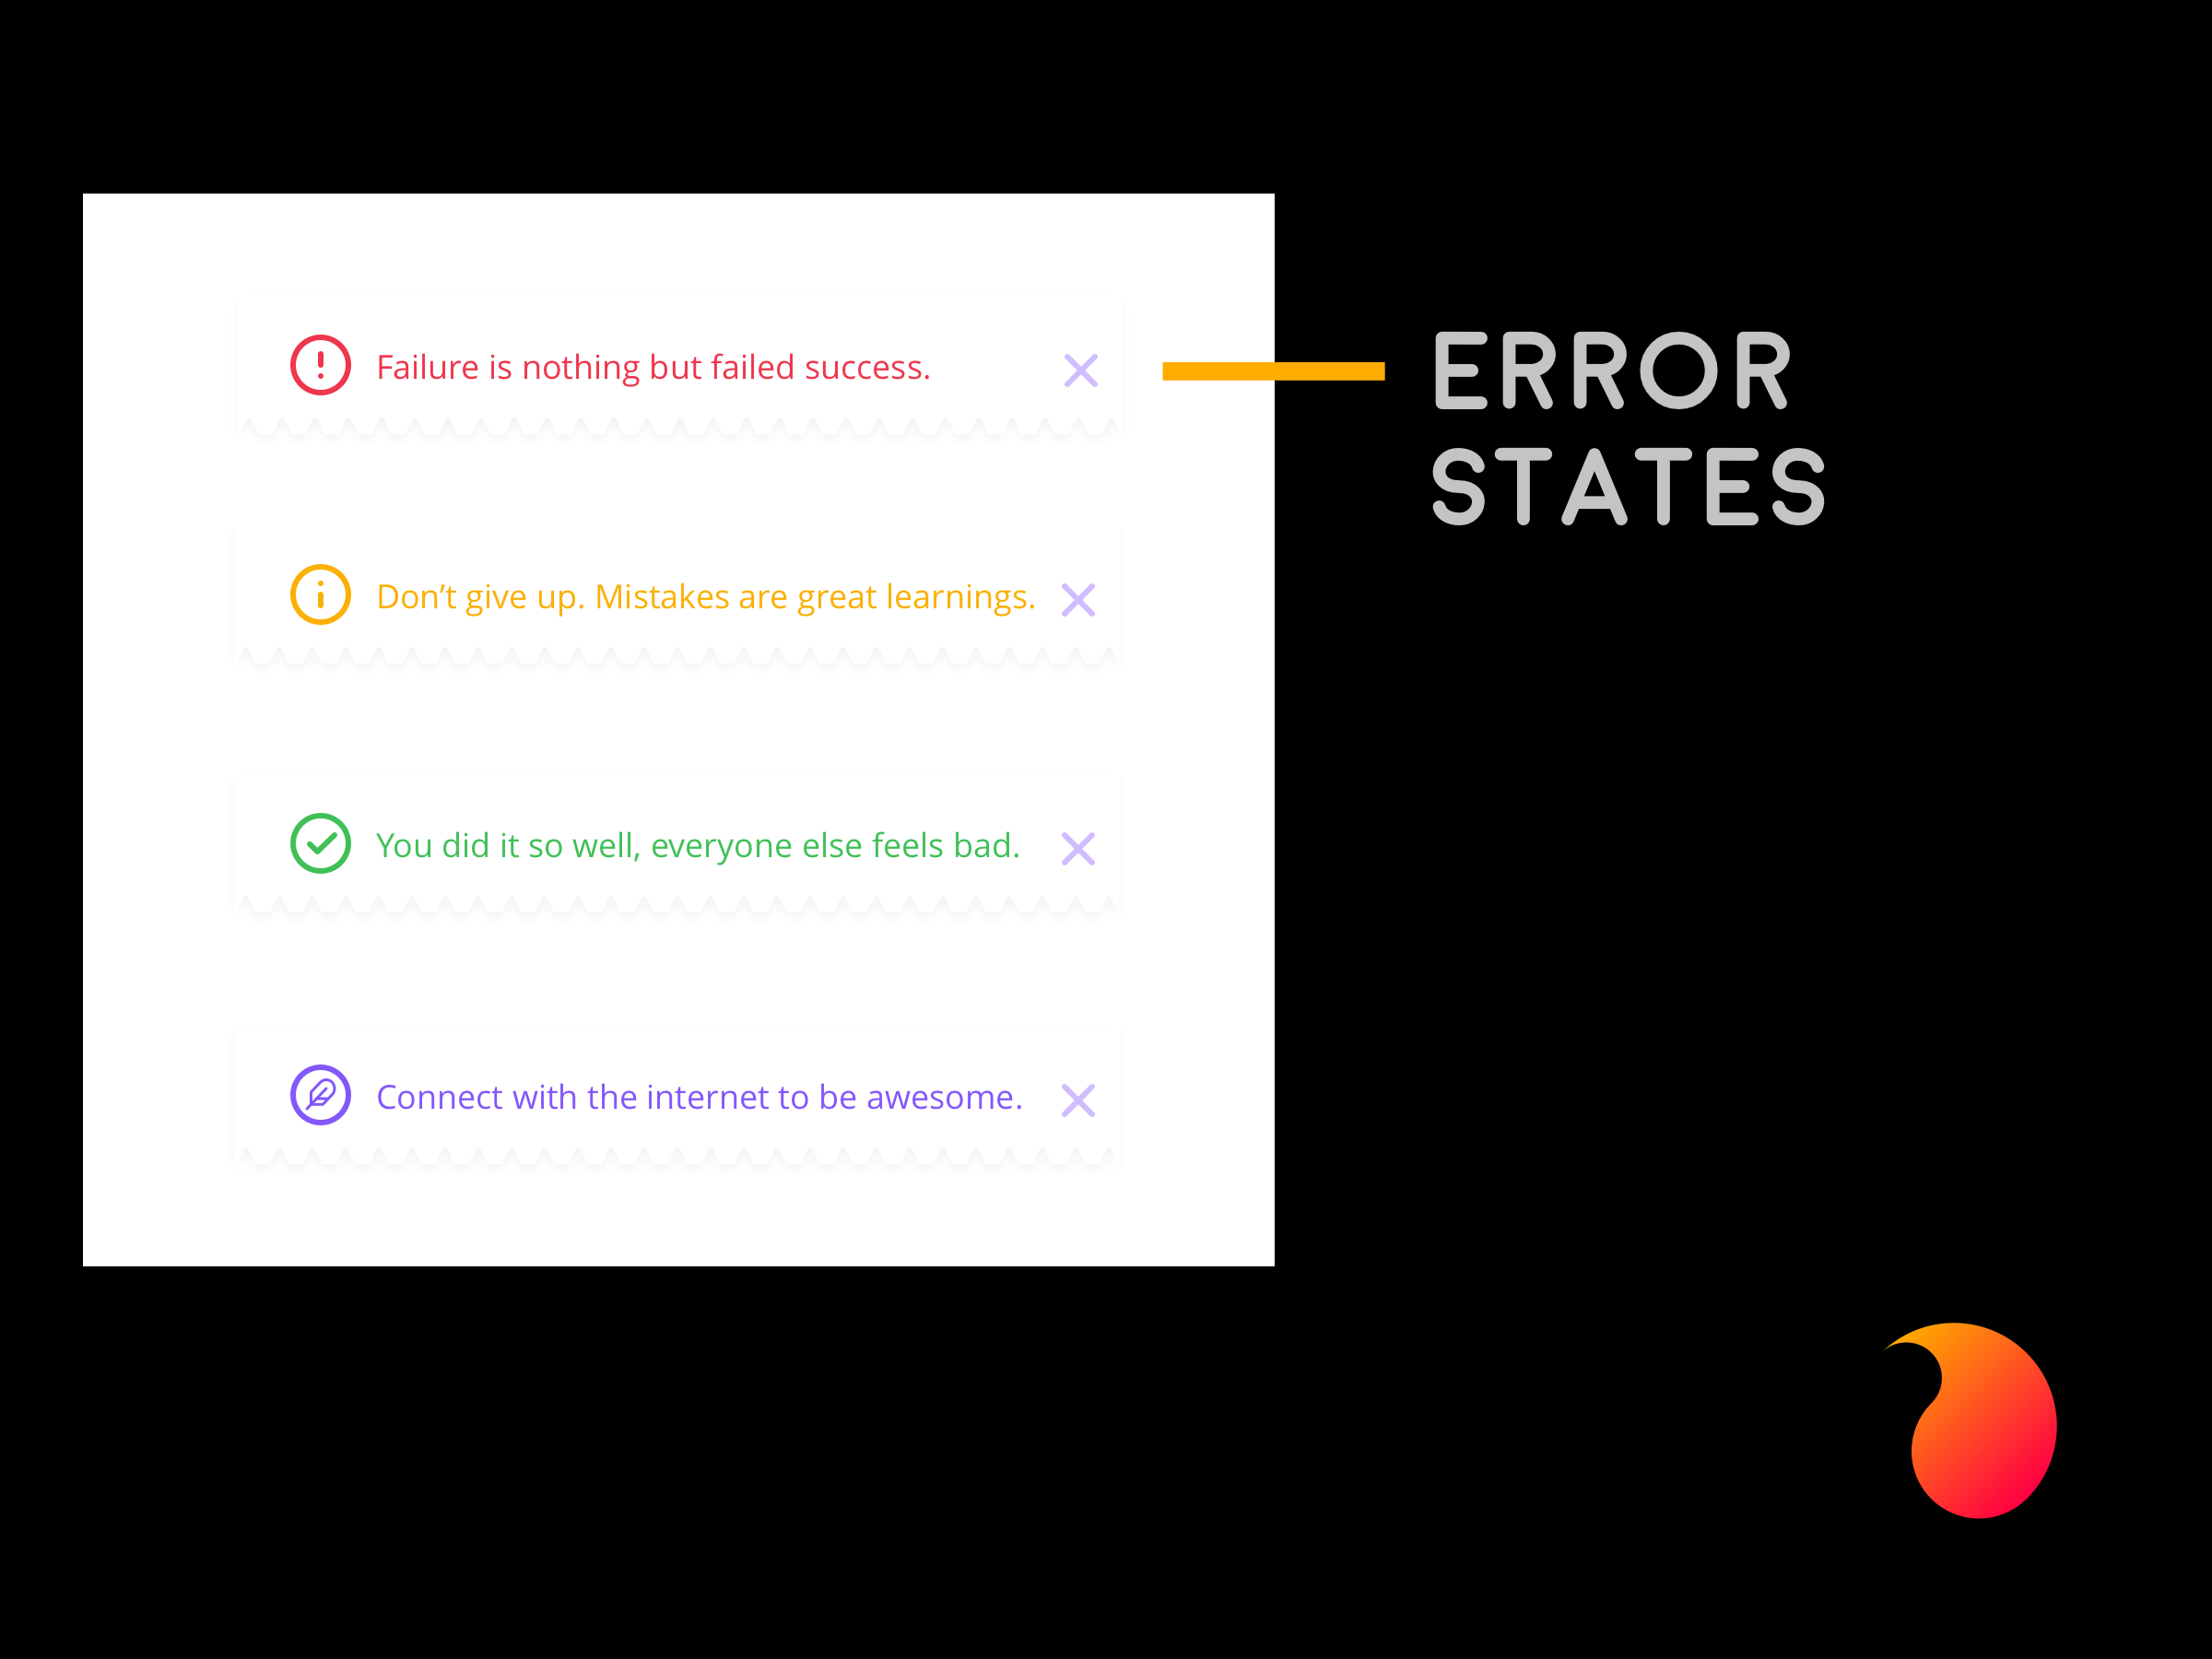 Error States (UX Copywriting)